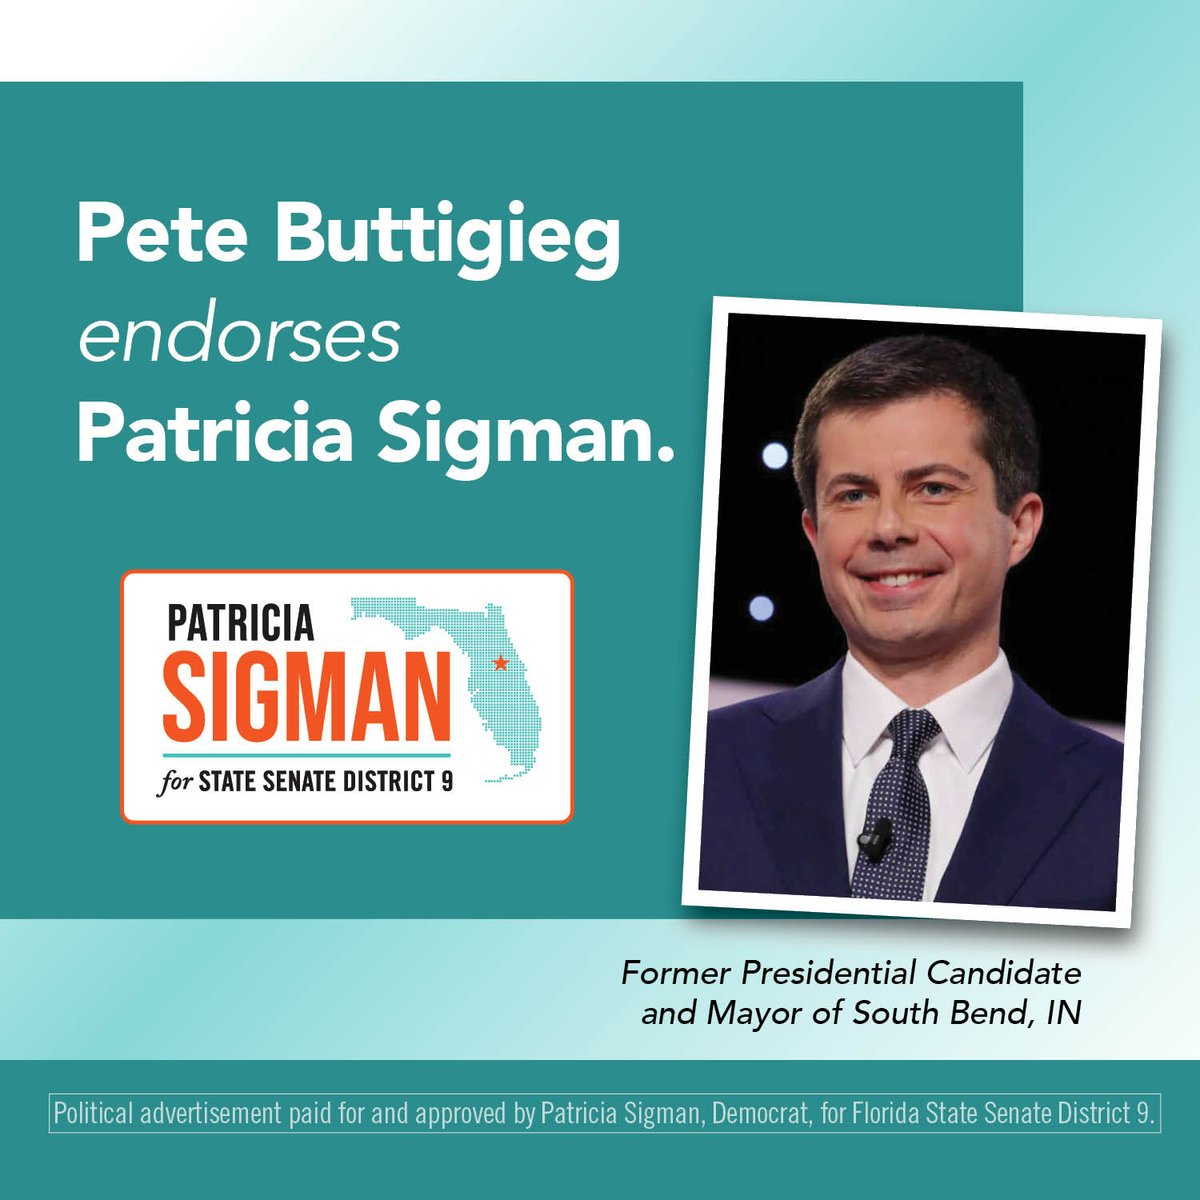 Mayor @PeteButtigieg knows that to #WinTheEra, we must all come together to solve the difficult issues facing our nation. I'm thankful for his leadership & proud to have his support as we #UniteforChange in #SD9 to create a brighter future for all Floridians! #FlaPol